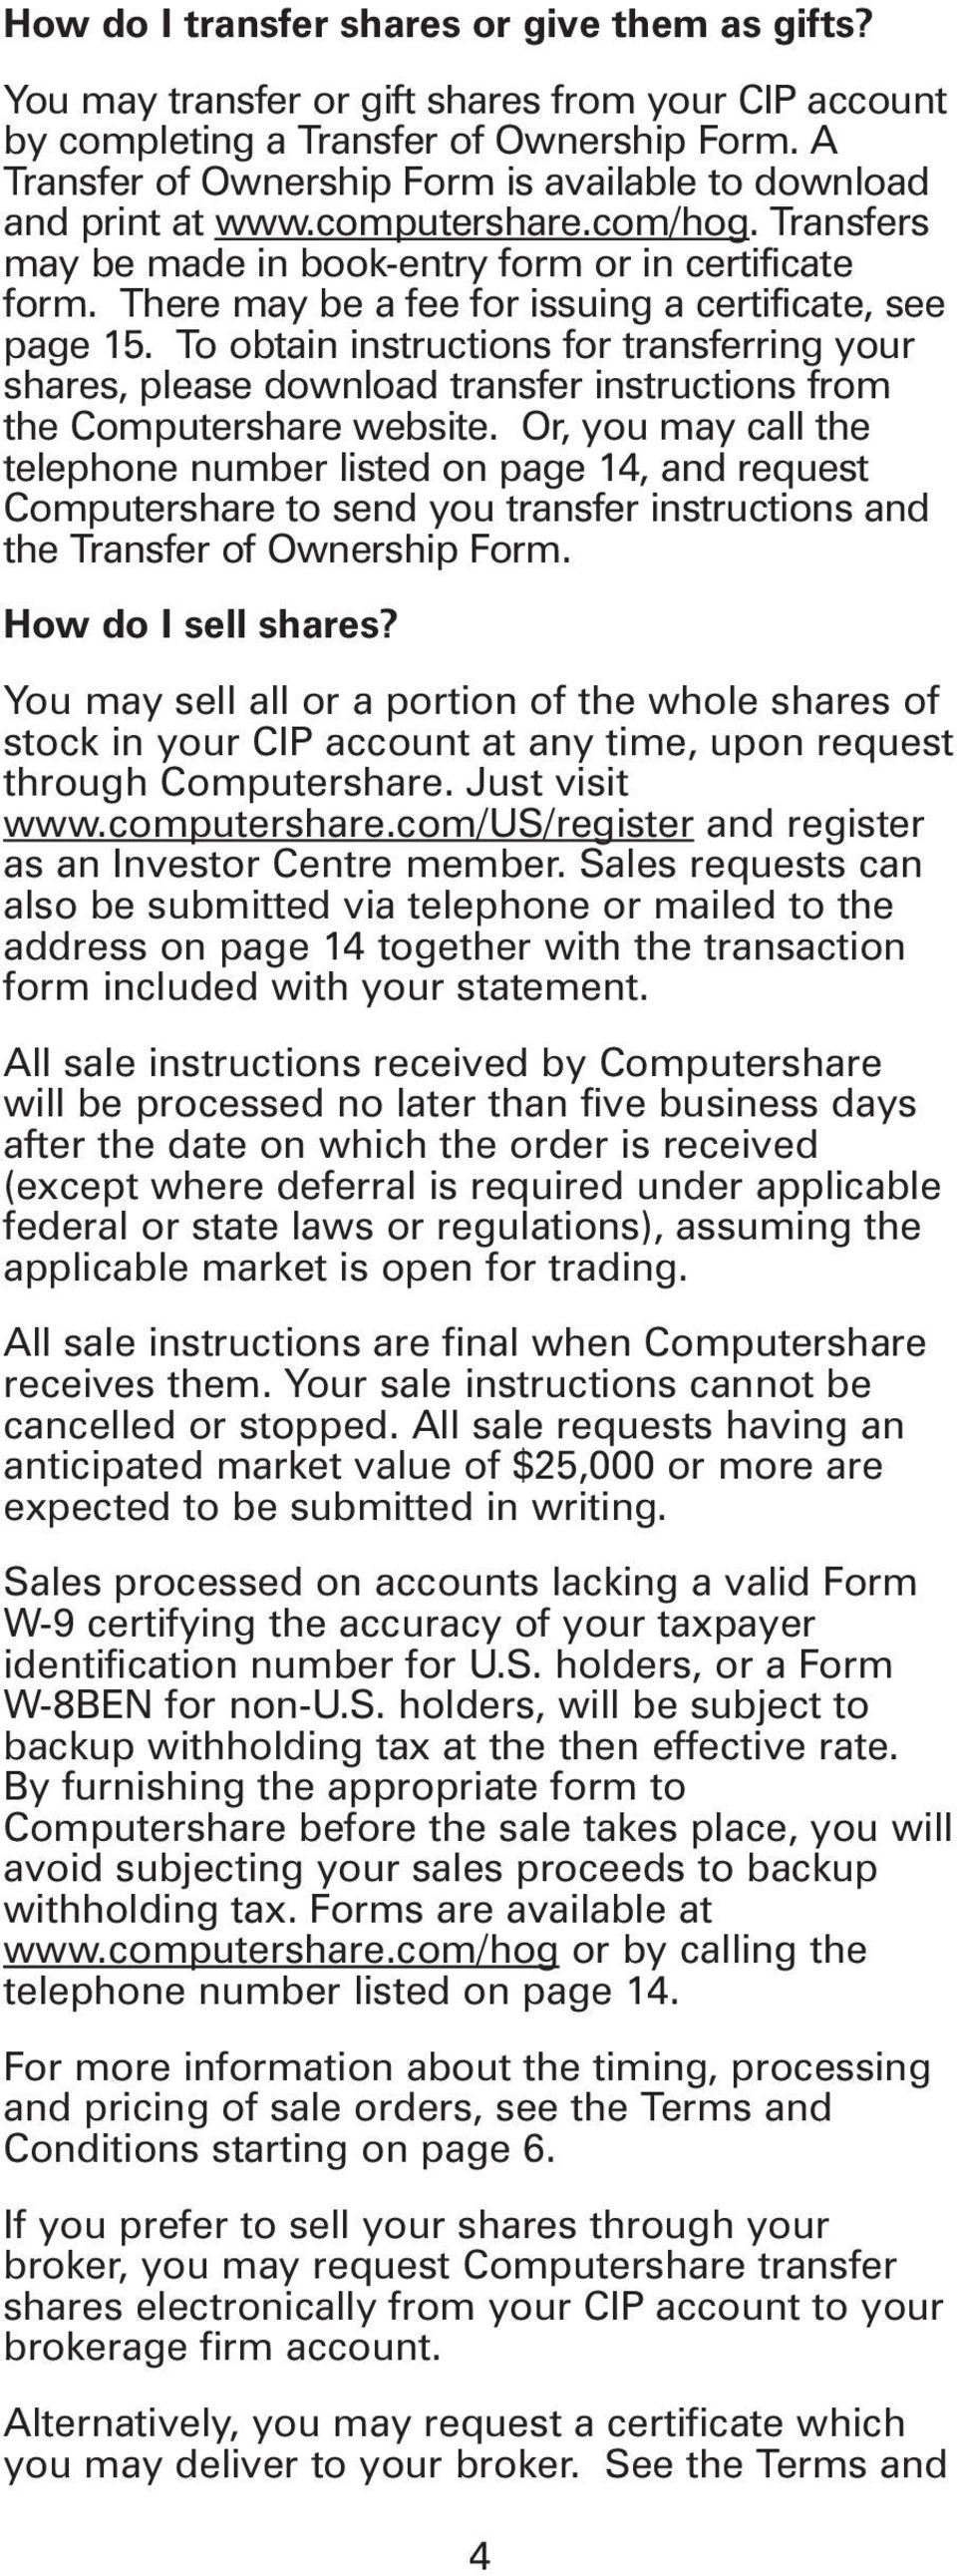 There may be a fee for issuing a certificate, see page 15. To obtain instructions for transferring your shares, please download transfer instructions from the Computershare website.